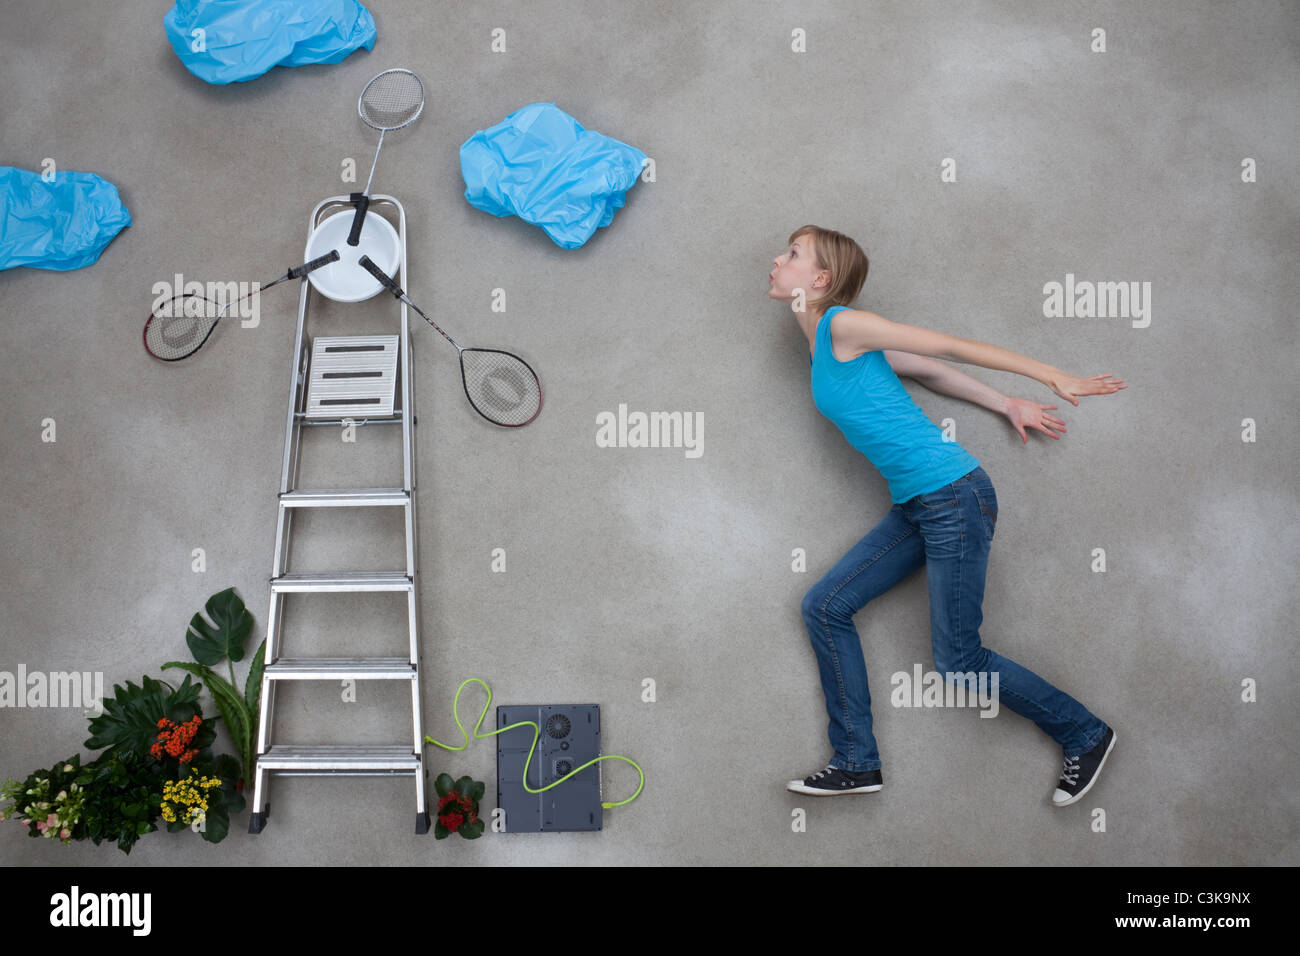 Mid adult woman blowing wind mill - Stock Image